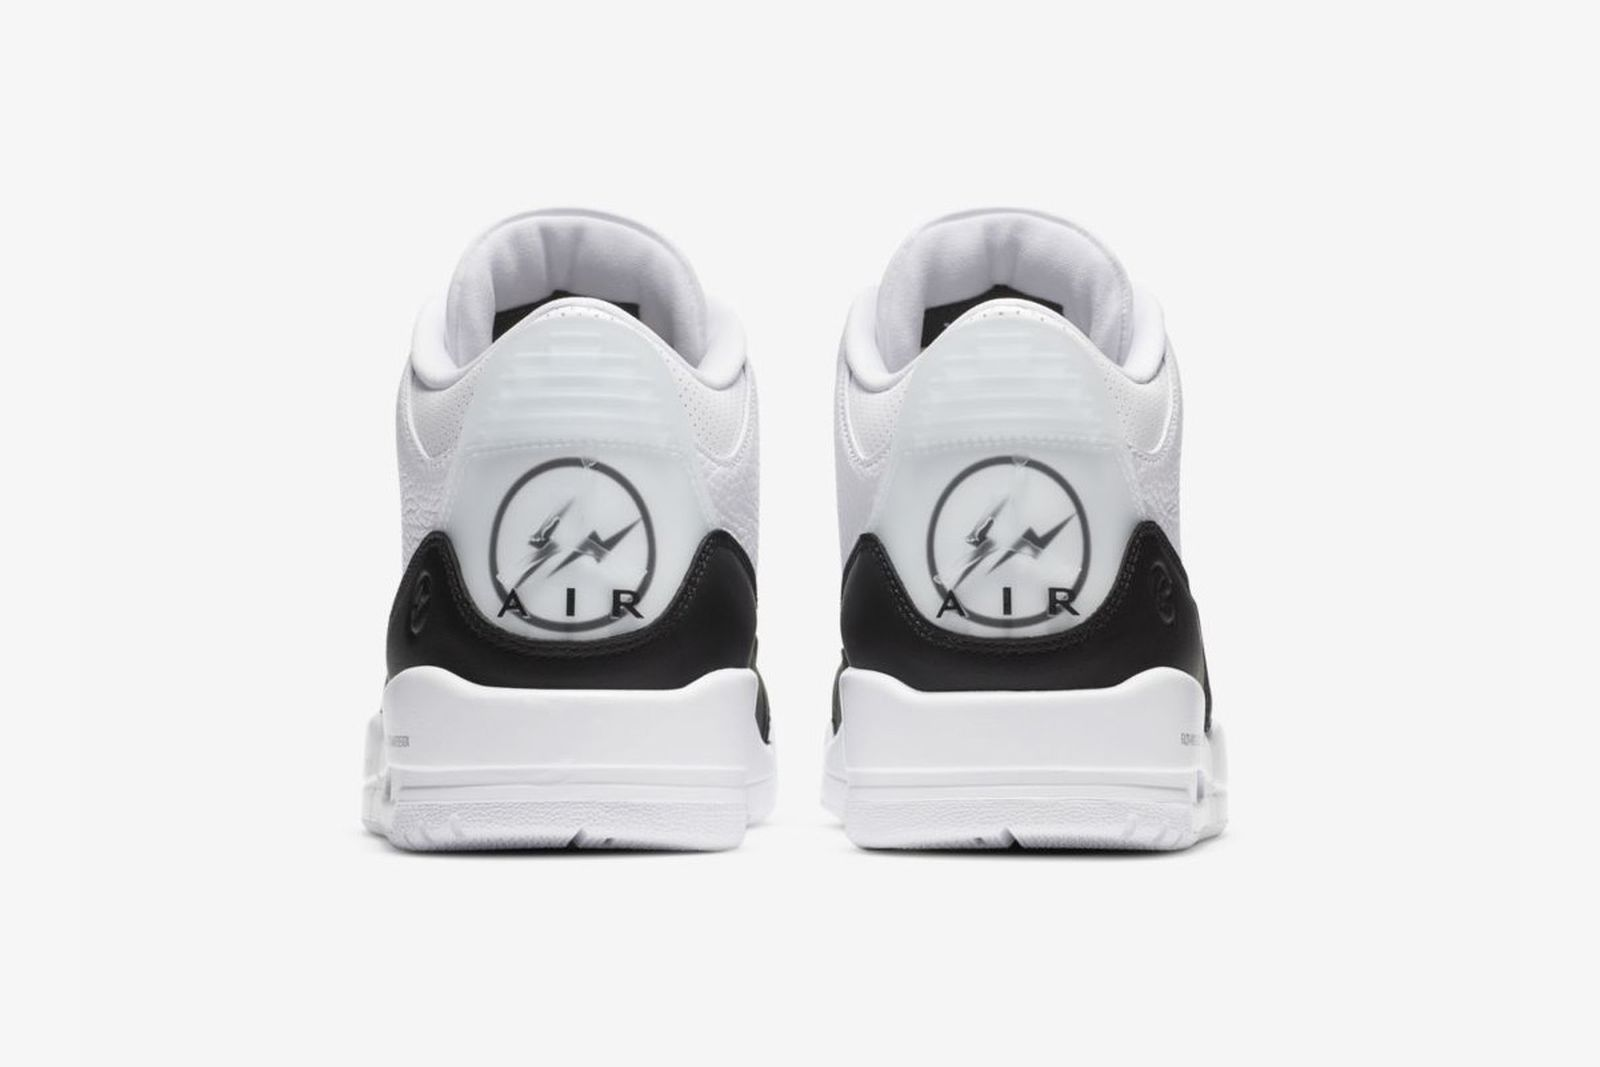 fragment-design-nike-air-jordan-3-release-date-price-product-04